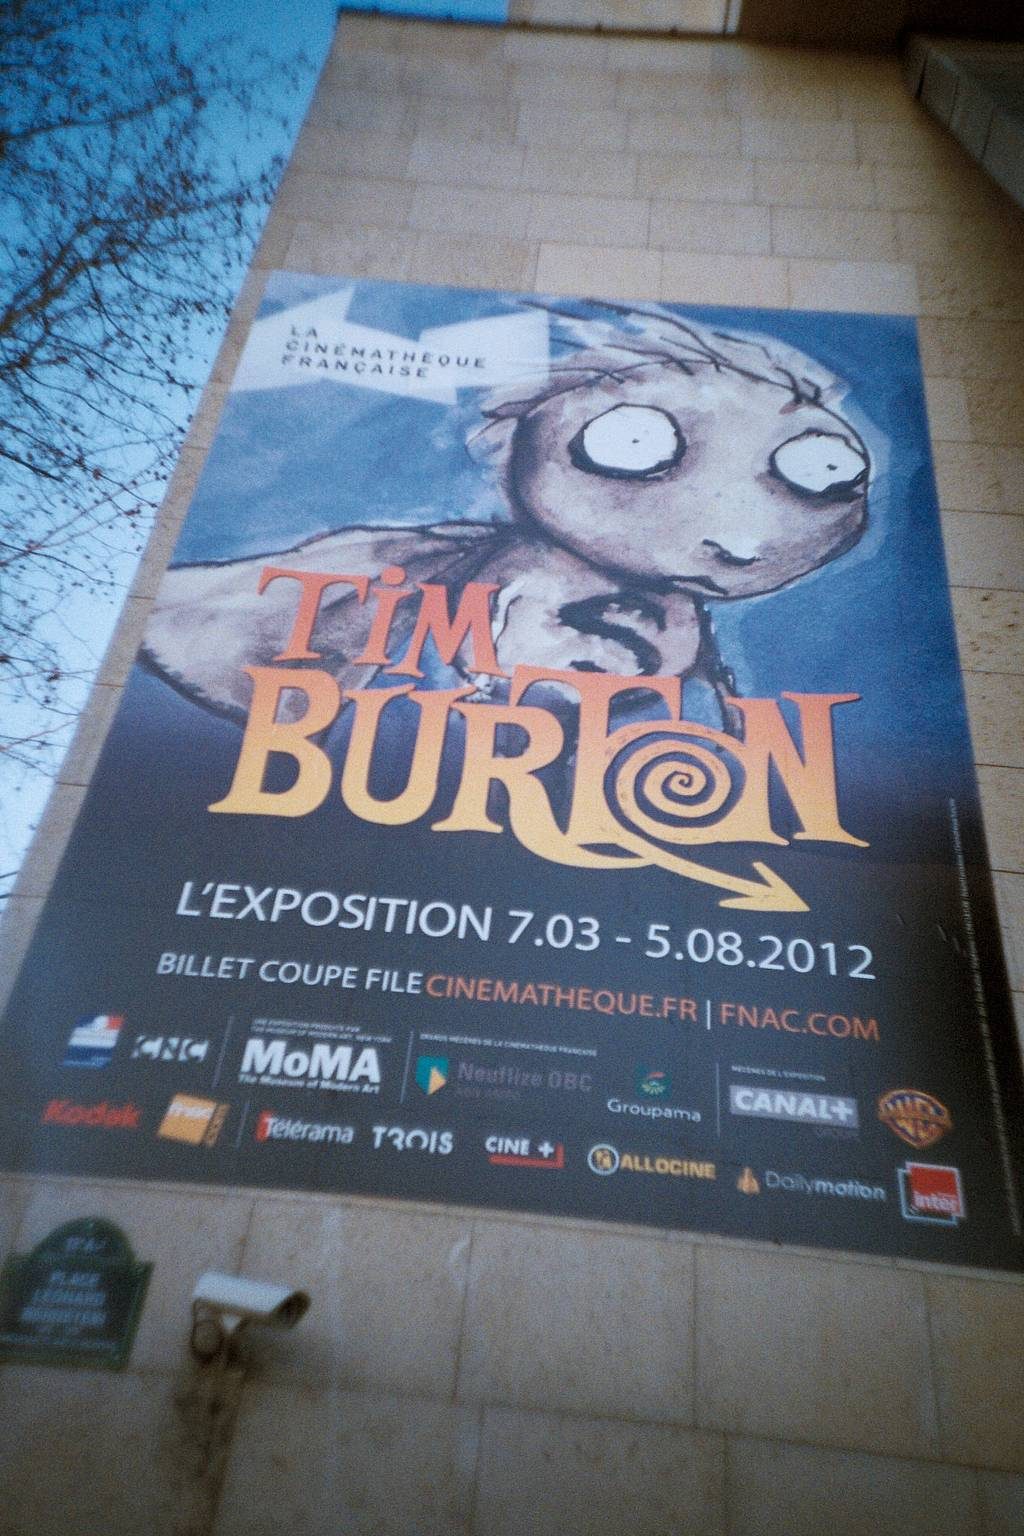 Tim Burton Exhibit at the French Cinémathèque in Paris